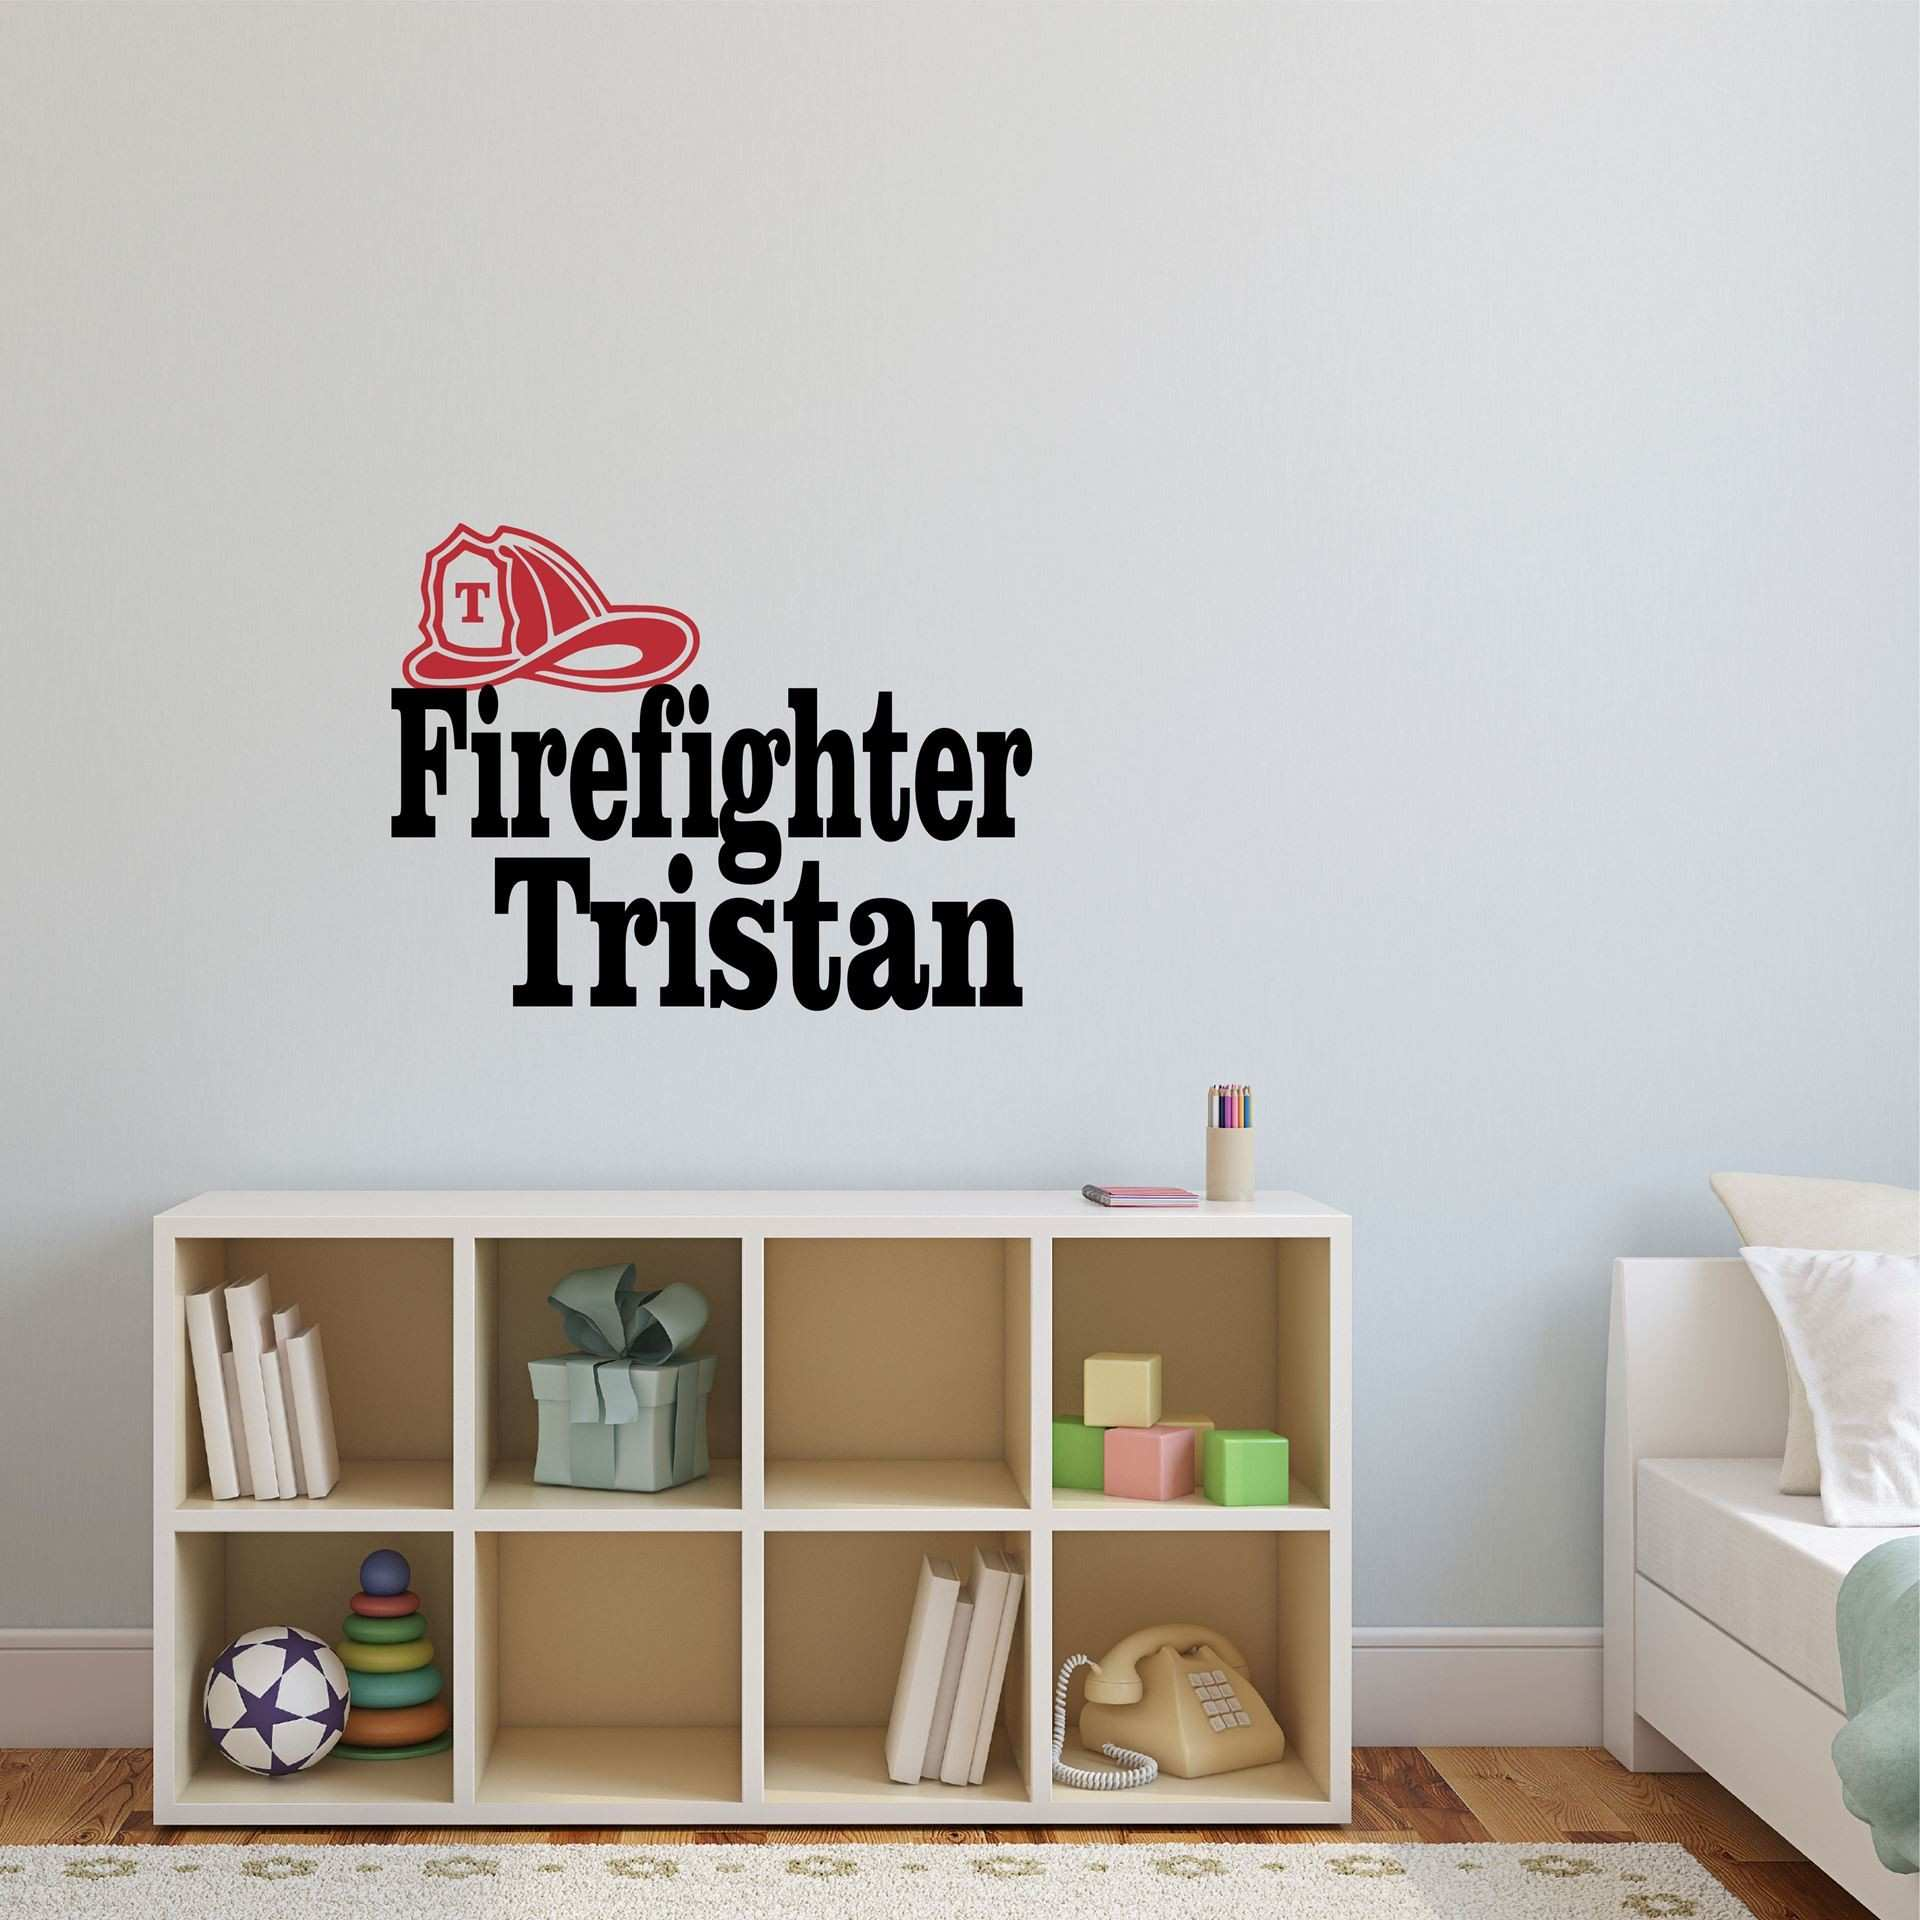 Fireman Wall Stickers Choice Image home design wall stickers